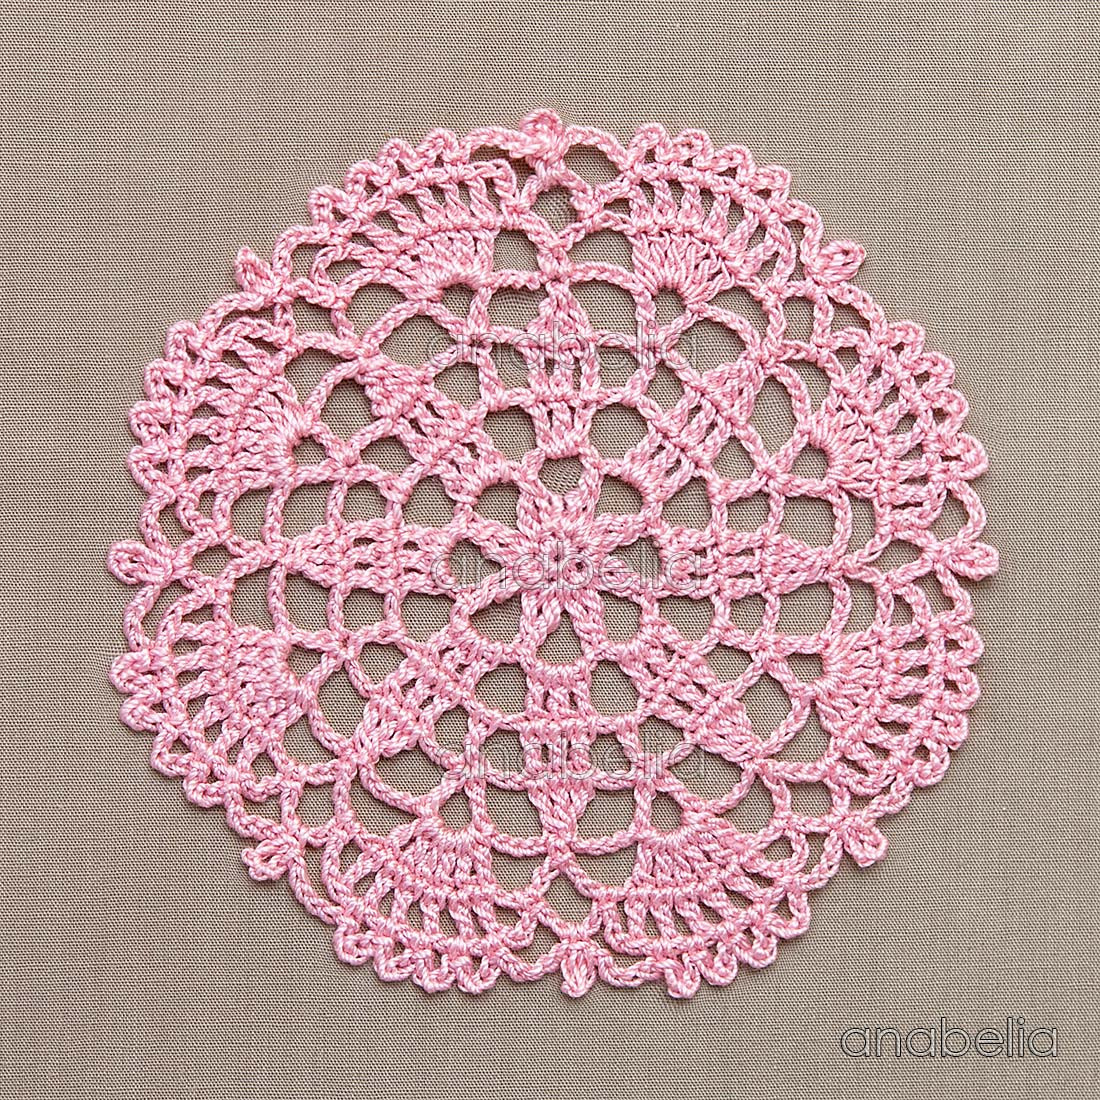 Unique Crochet Lace Motifs In Pink and White Free Patterns Crochet Lace Of Amazing 43 Photos Crochet Lace